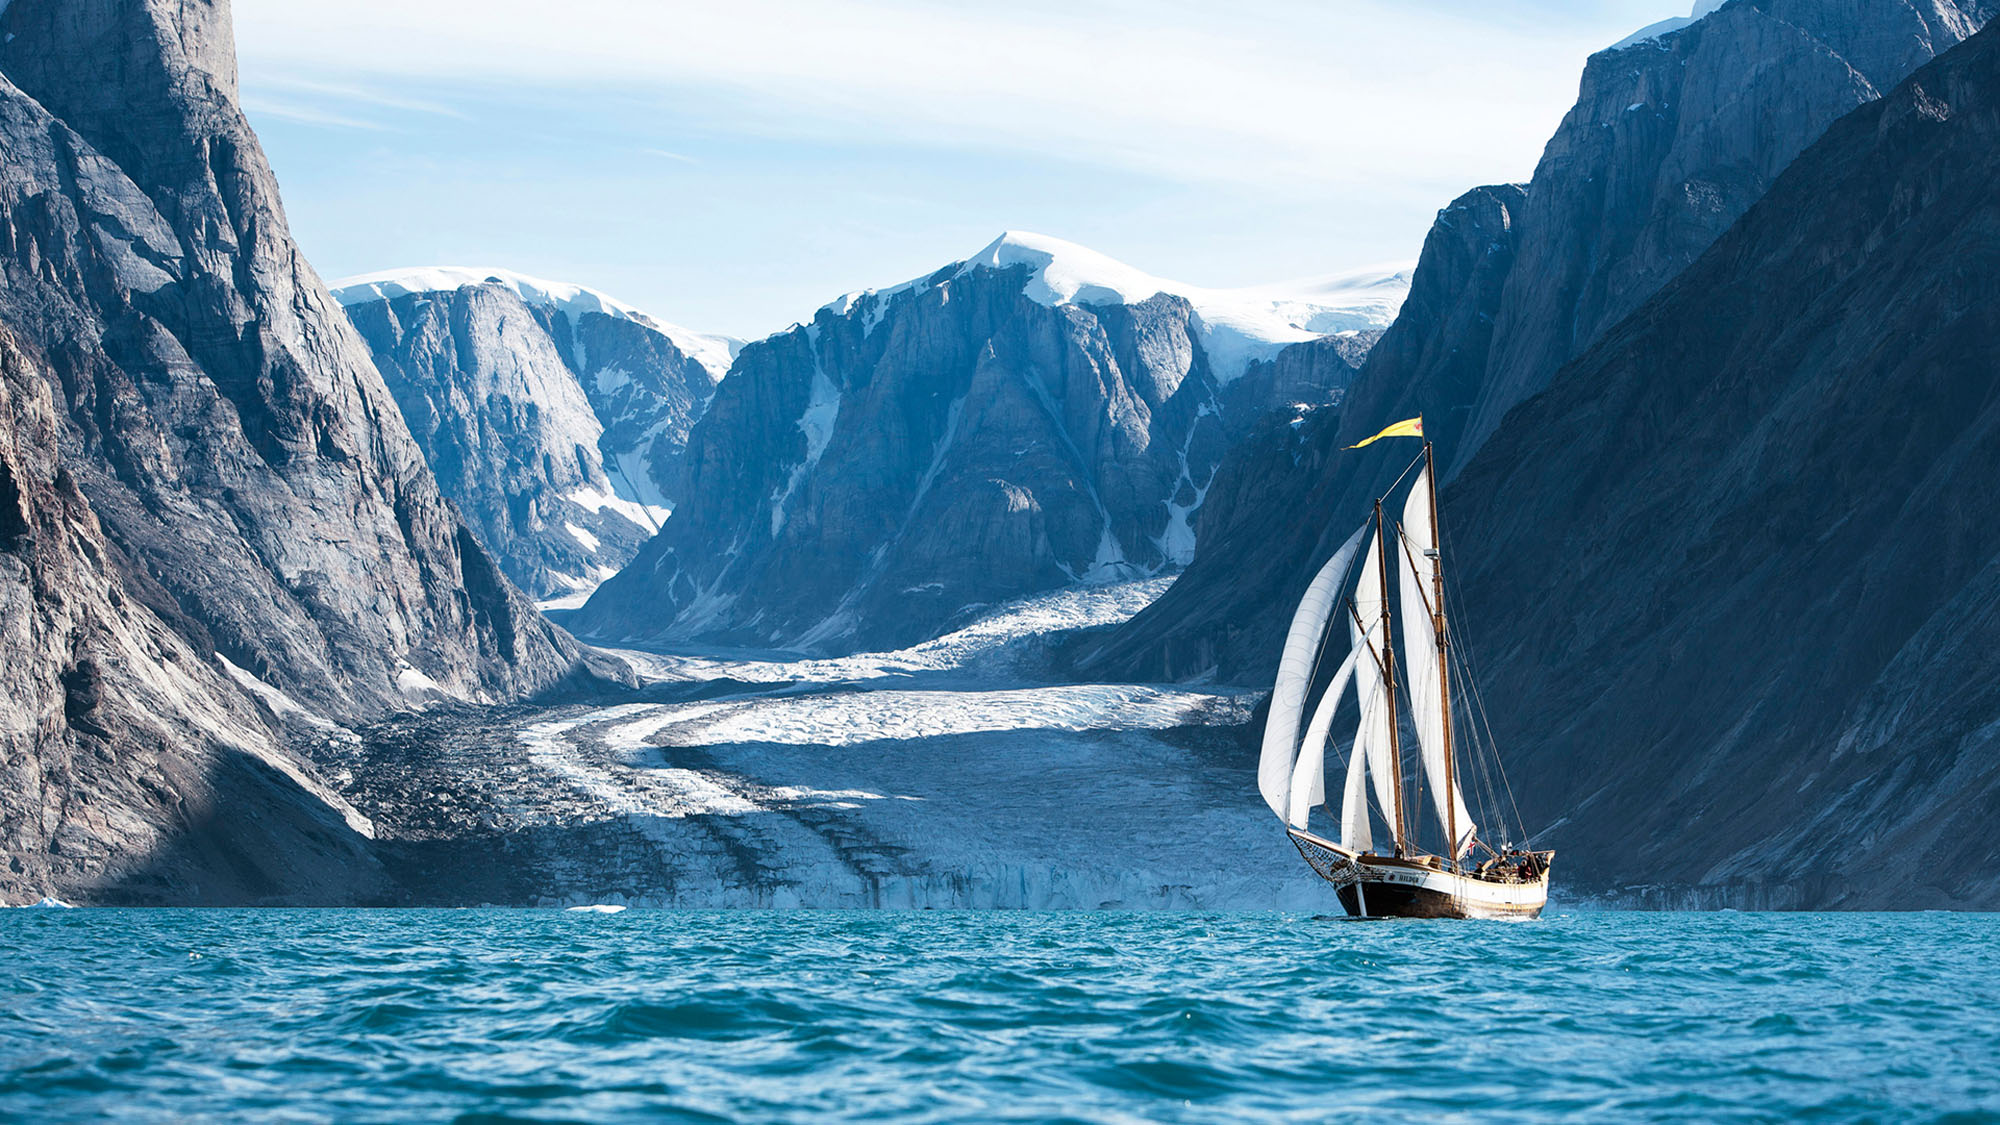 Greenland - Inuit Culture And A Wilderness Under Threat